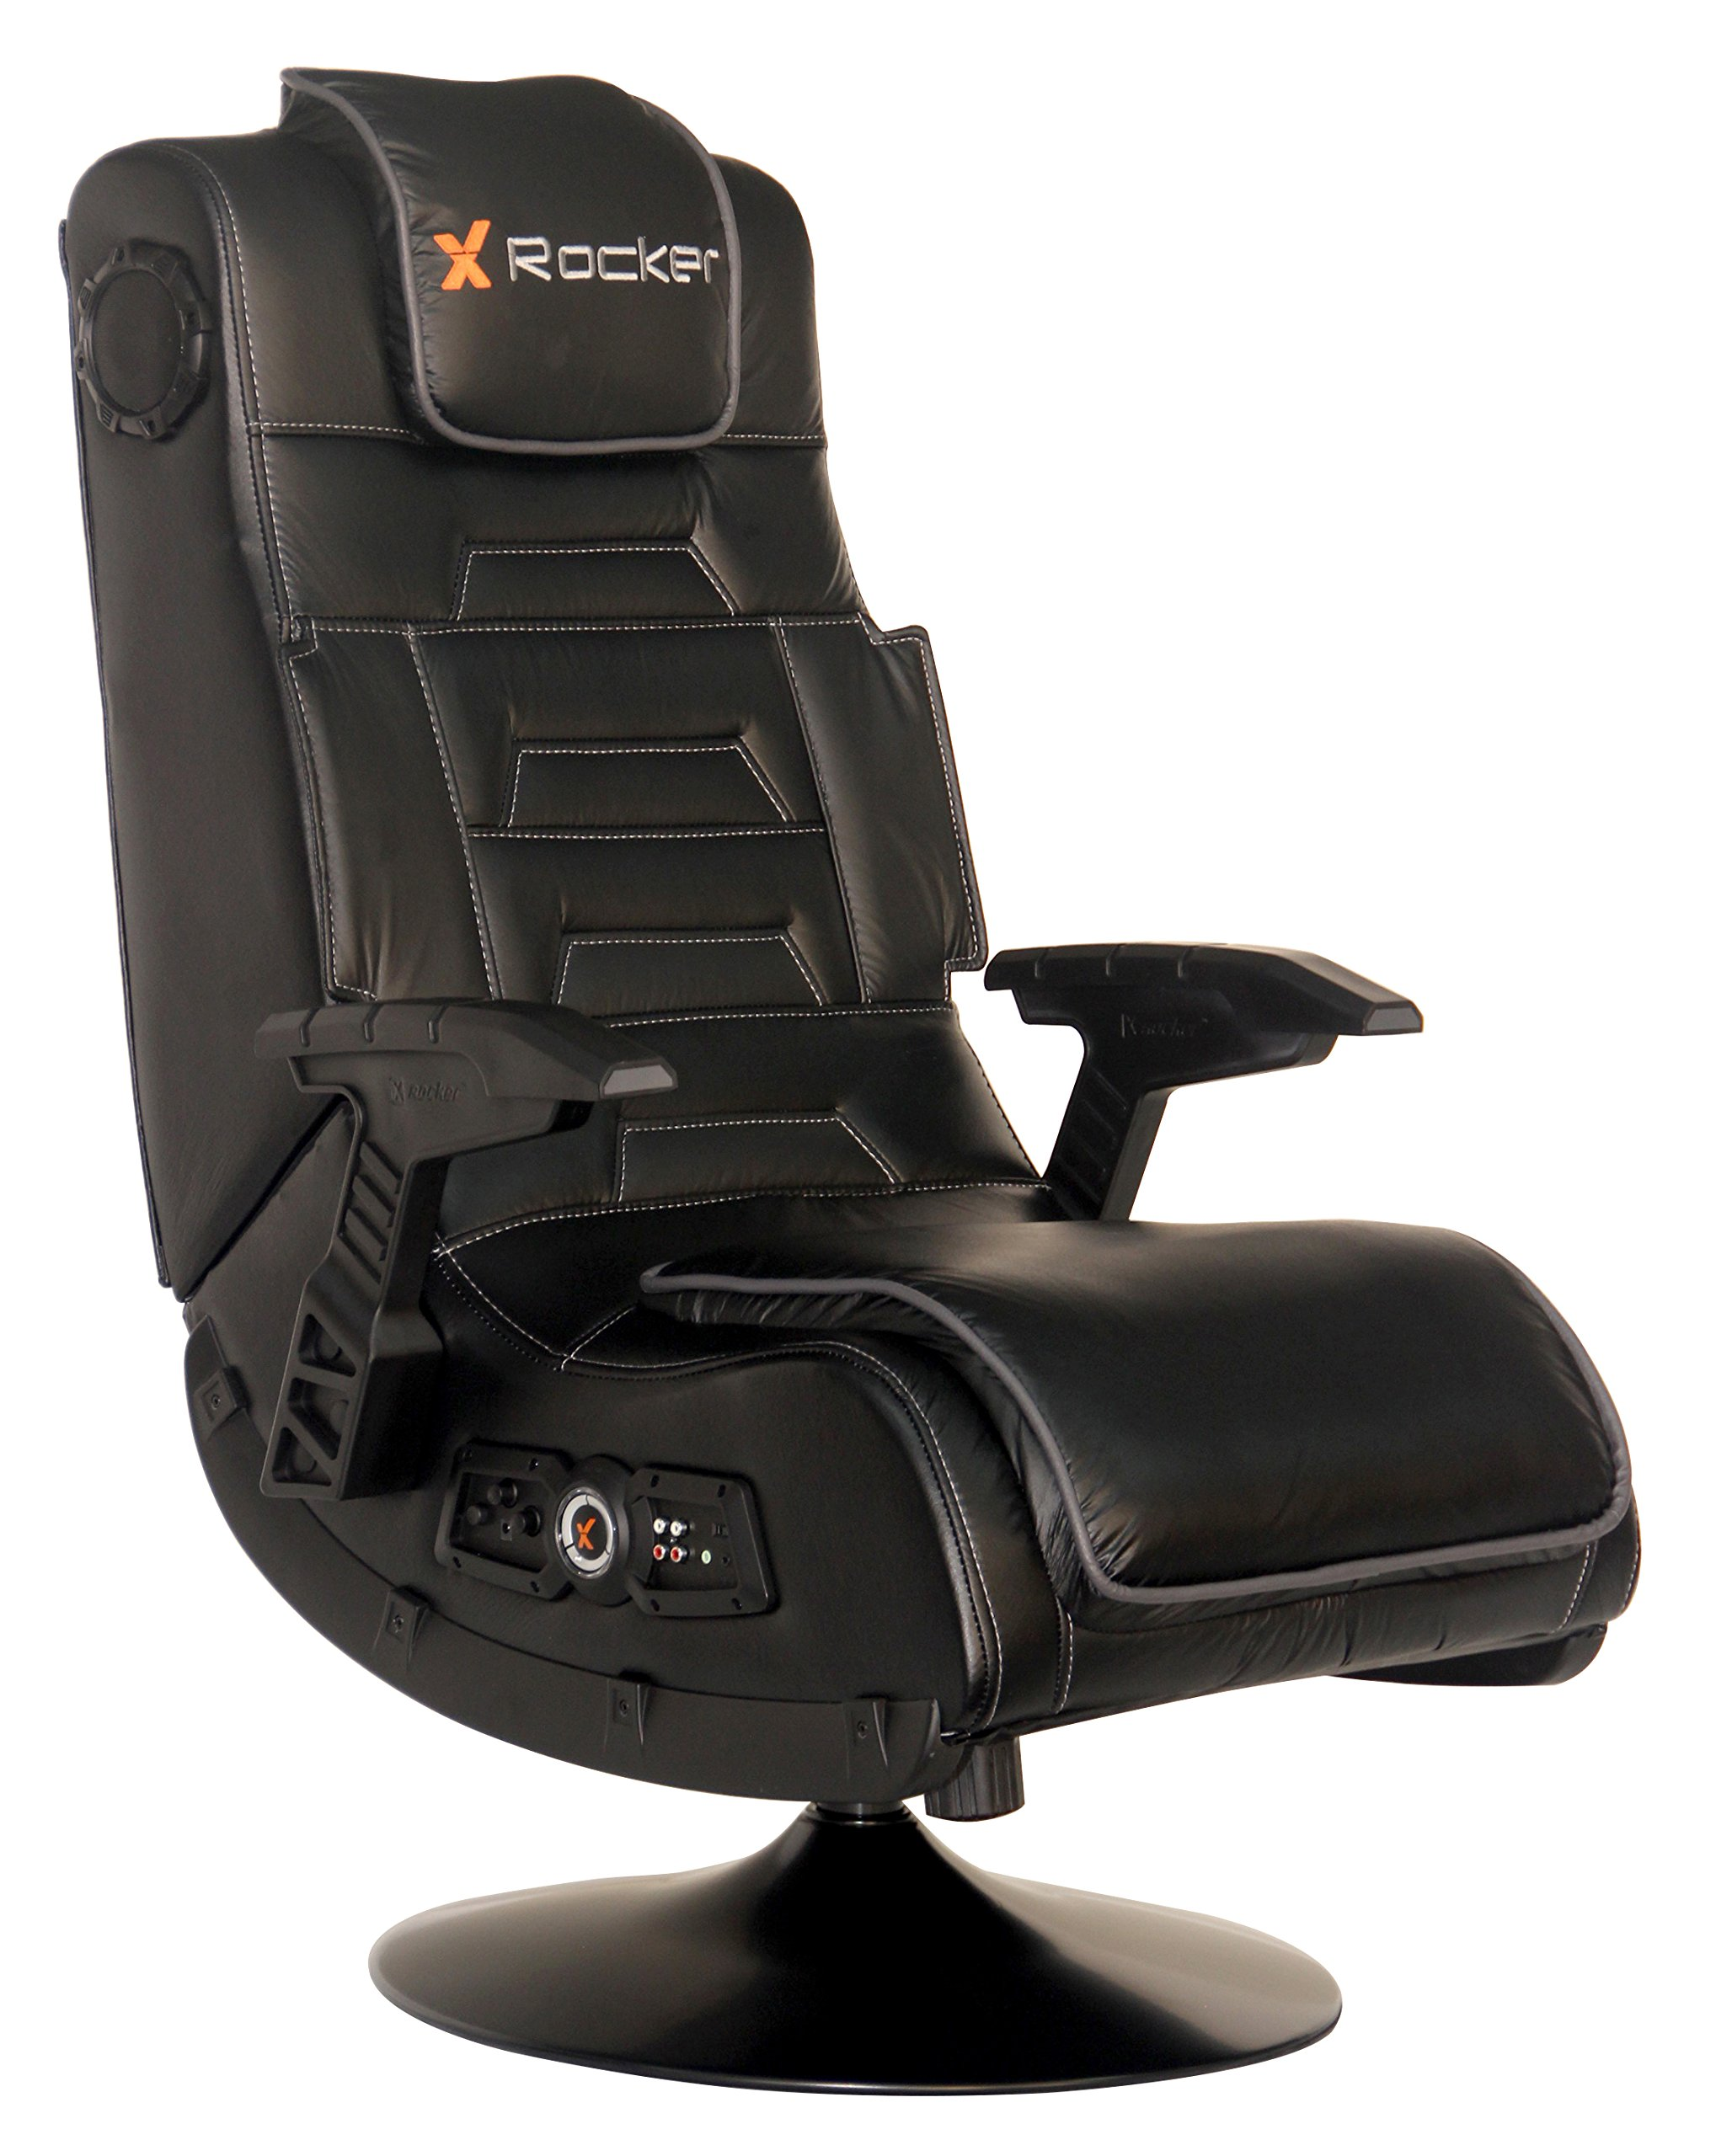 X Rocker Pro Series Pedestal 21 Video Gaming Chair